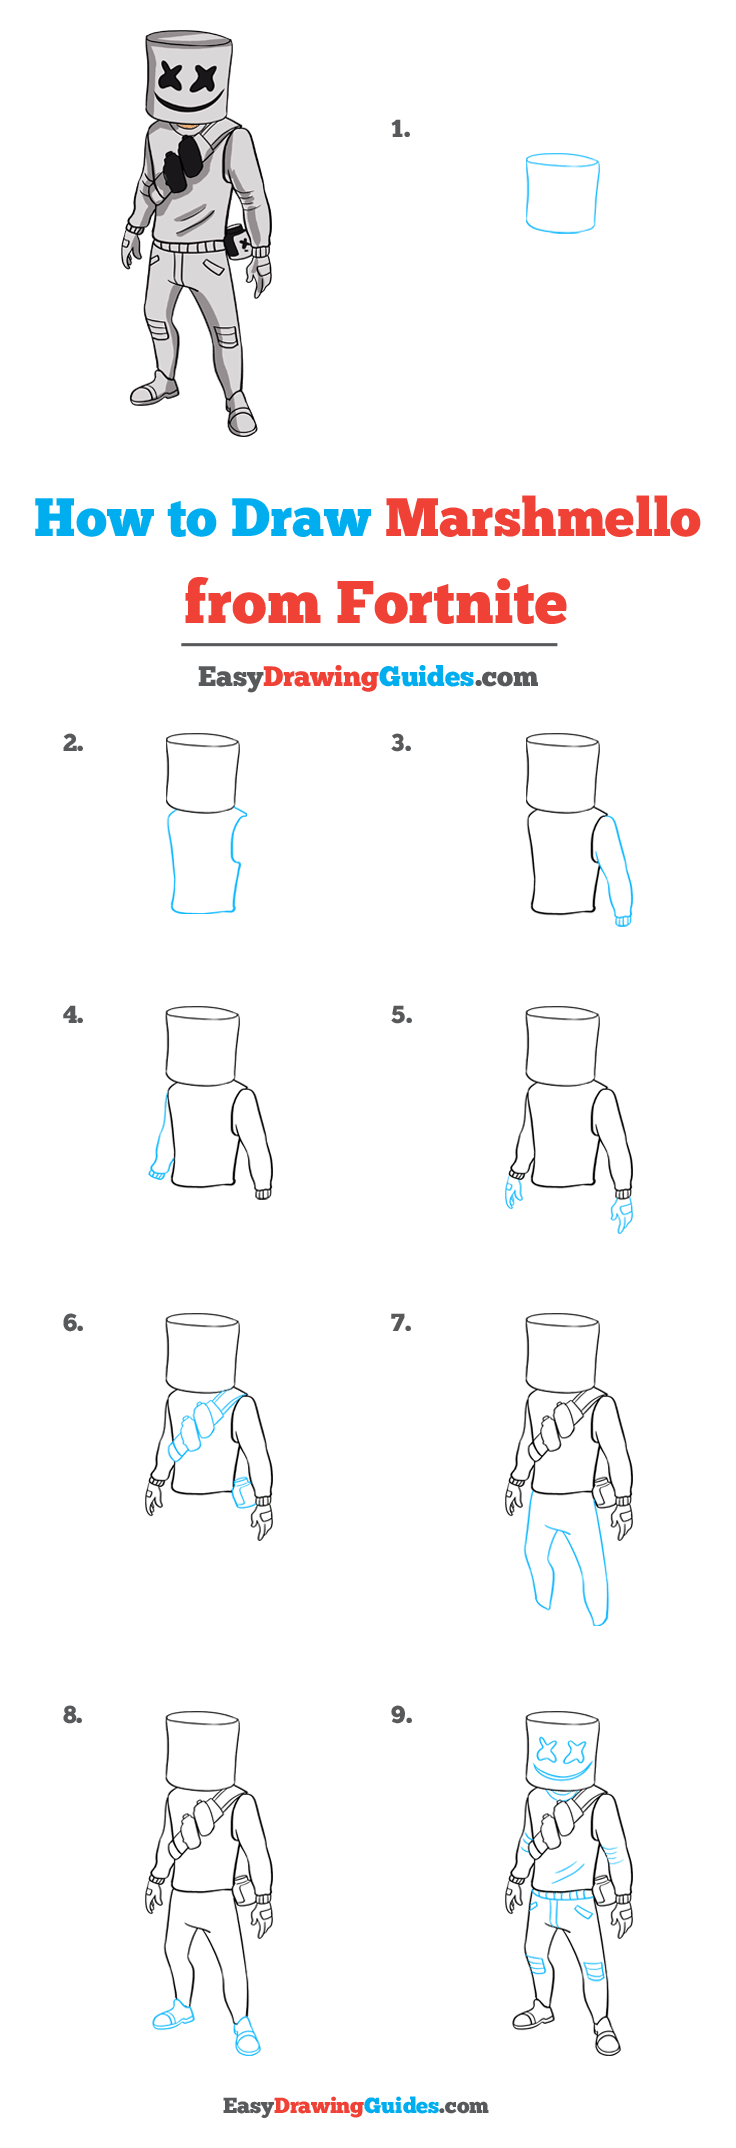 How to Draw Marshmello from Fortnite